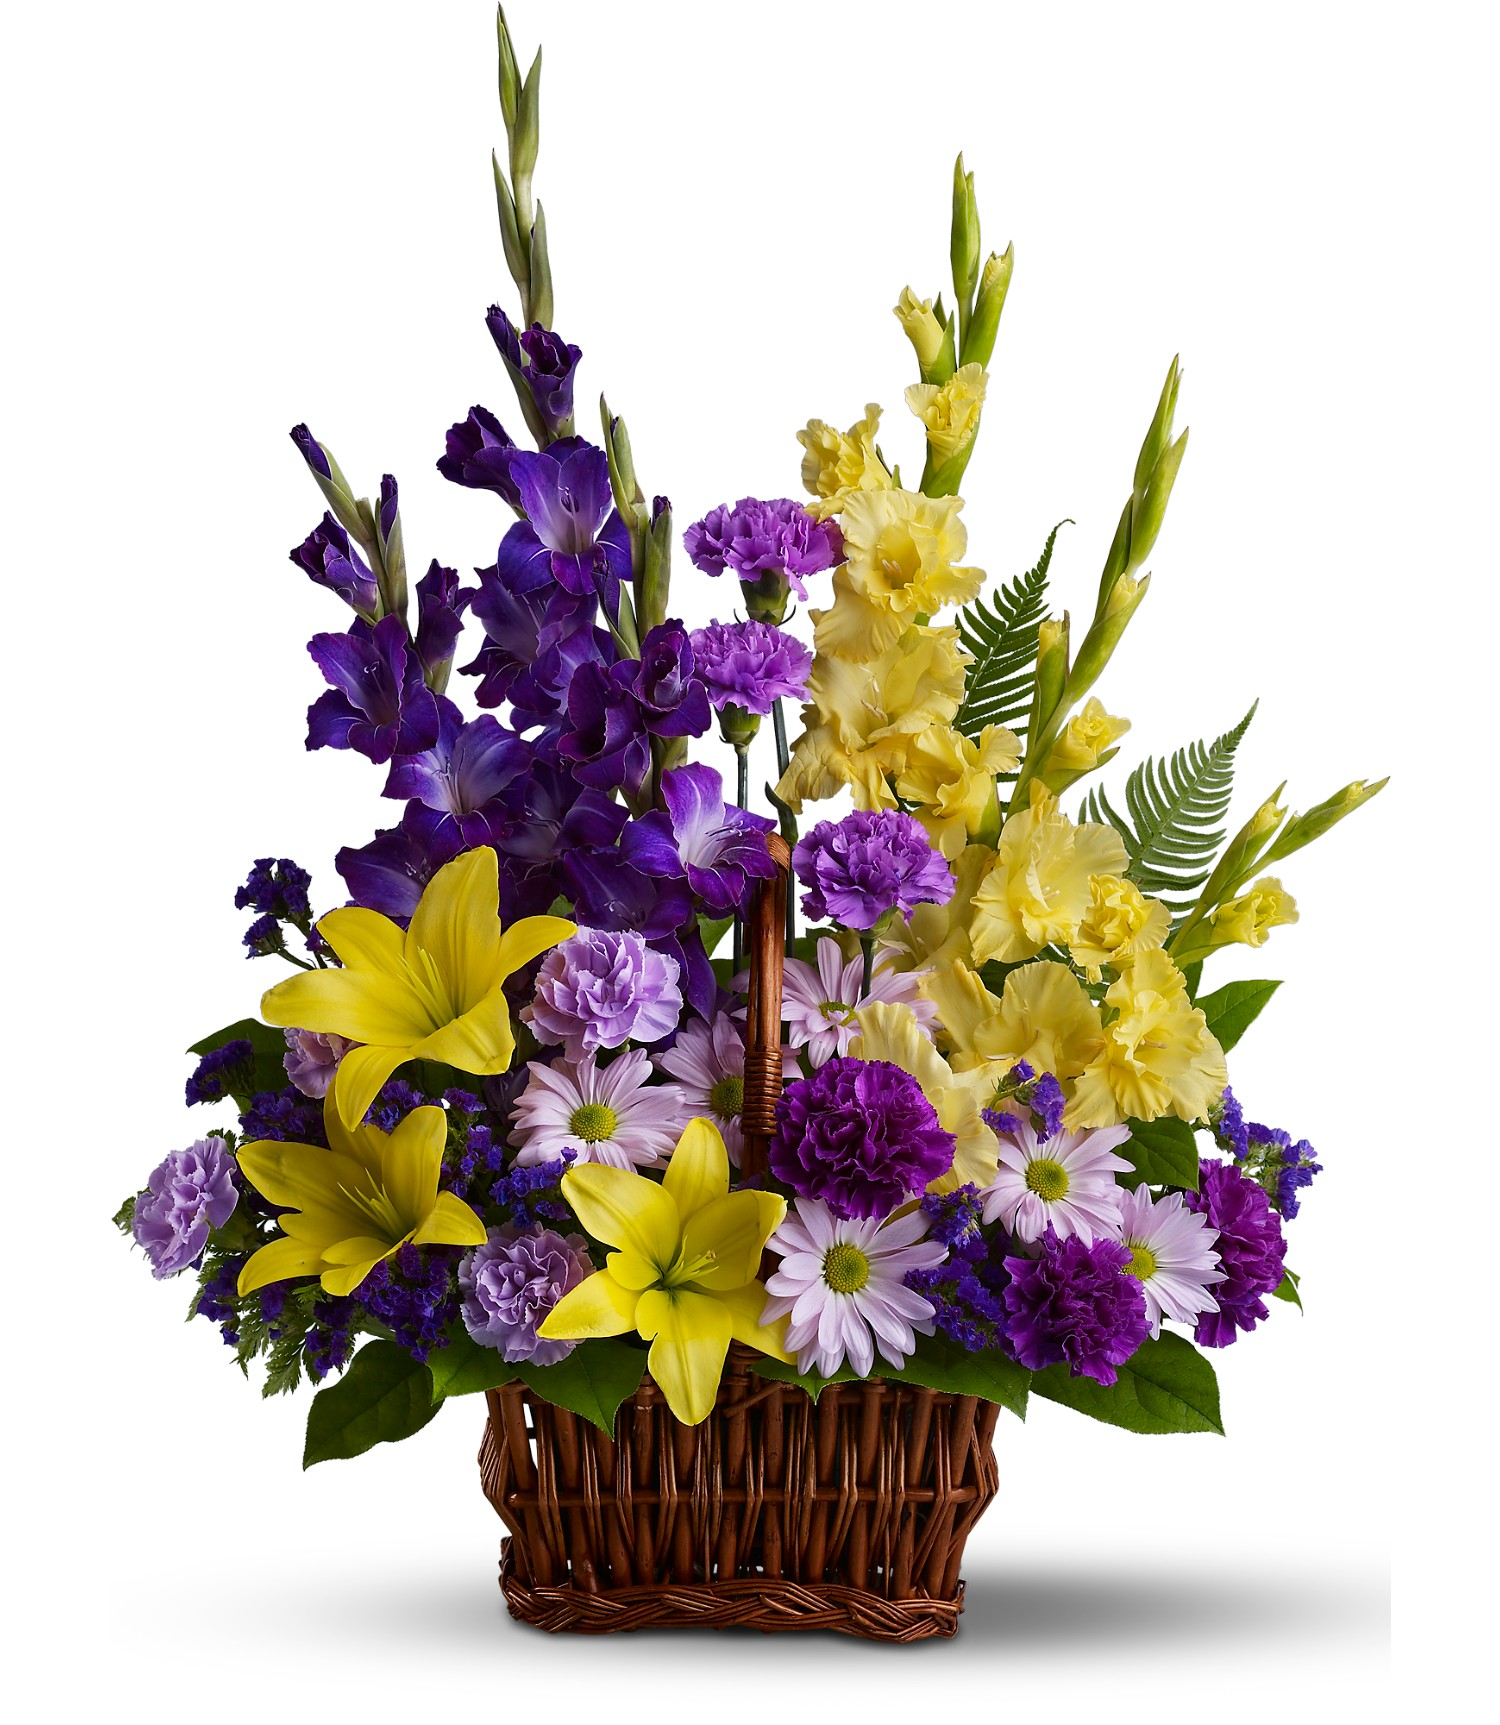 Fondest Good Bye Basket Flowers From The Heart